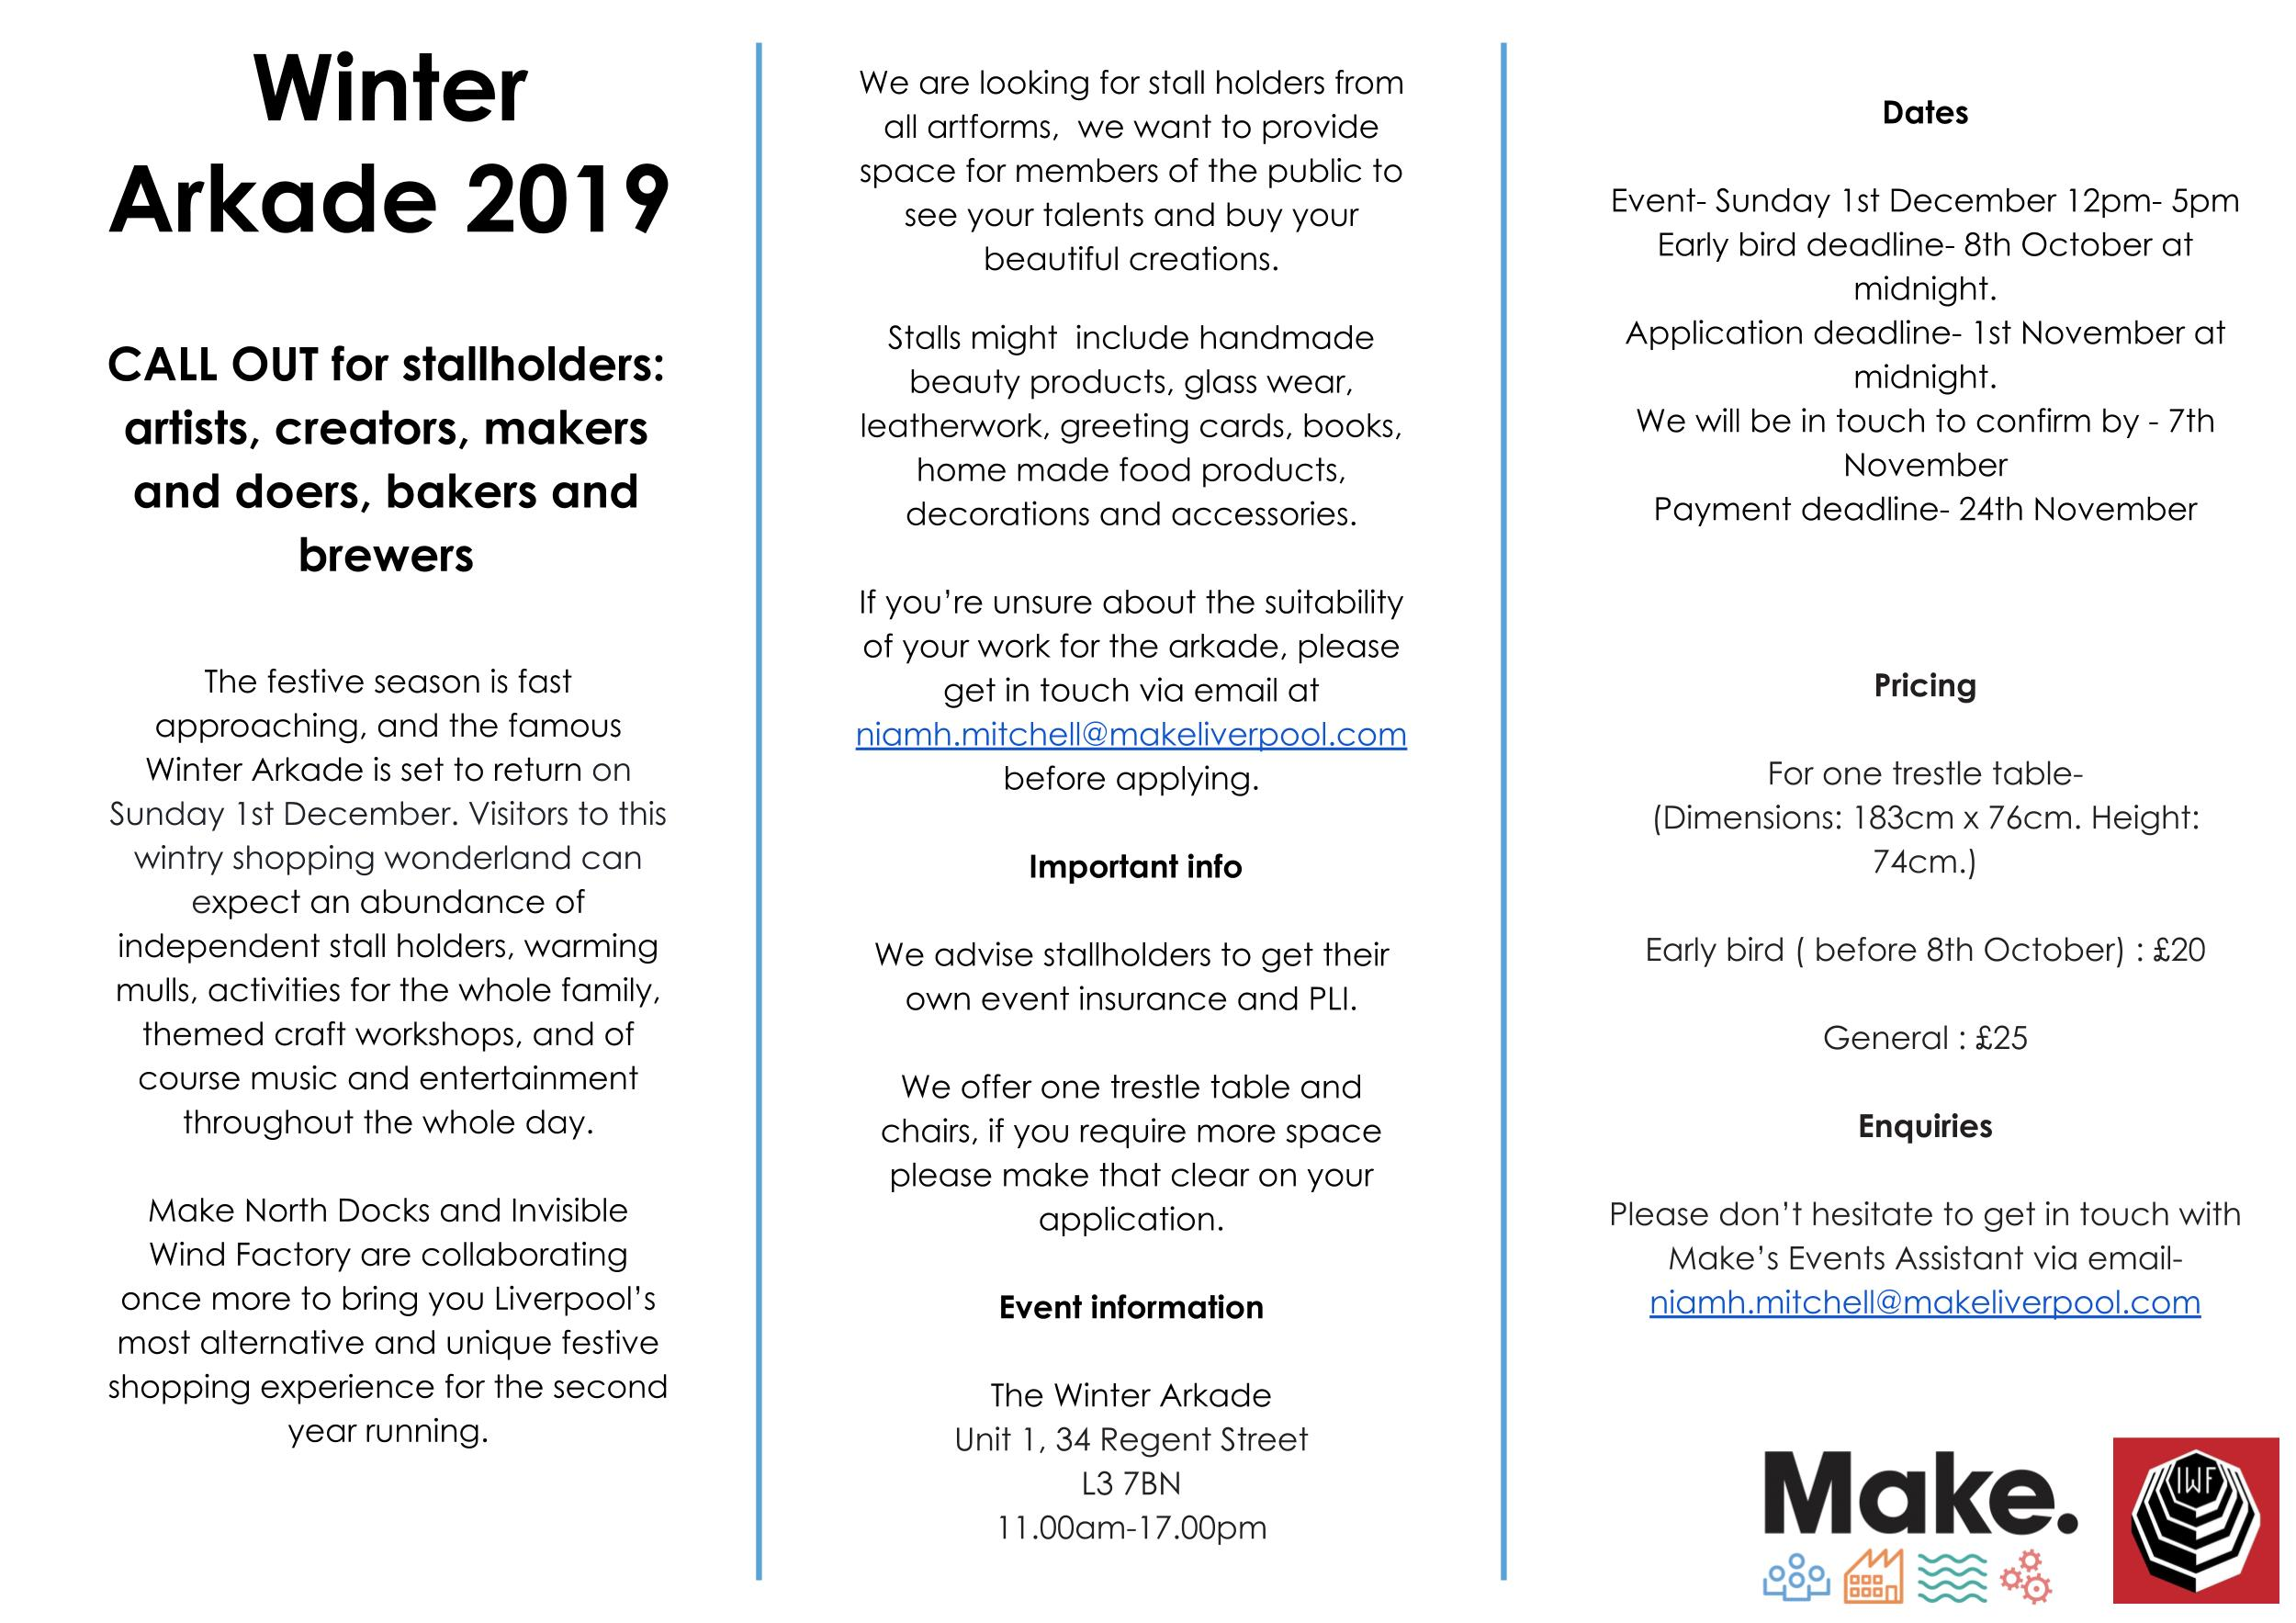 Winter Arkade stallholders call out information